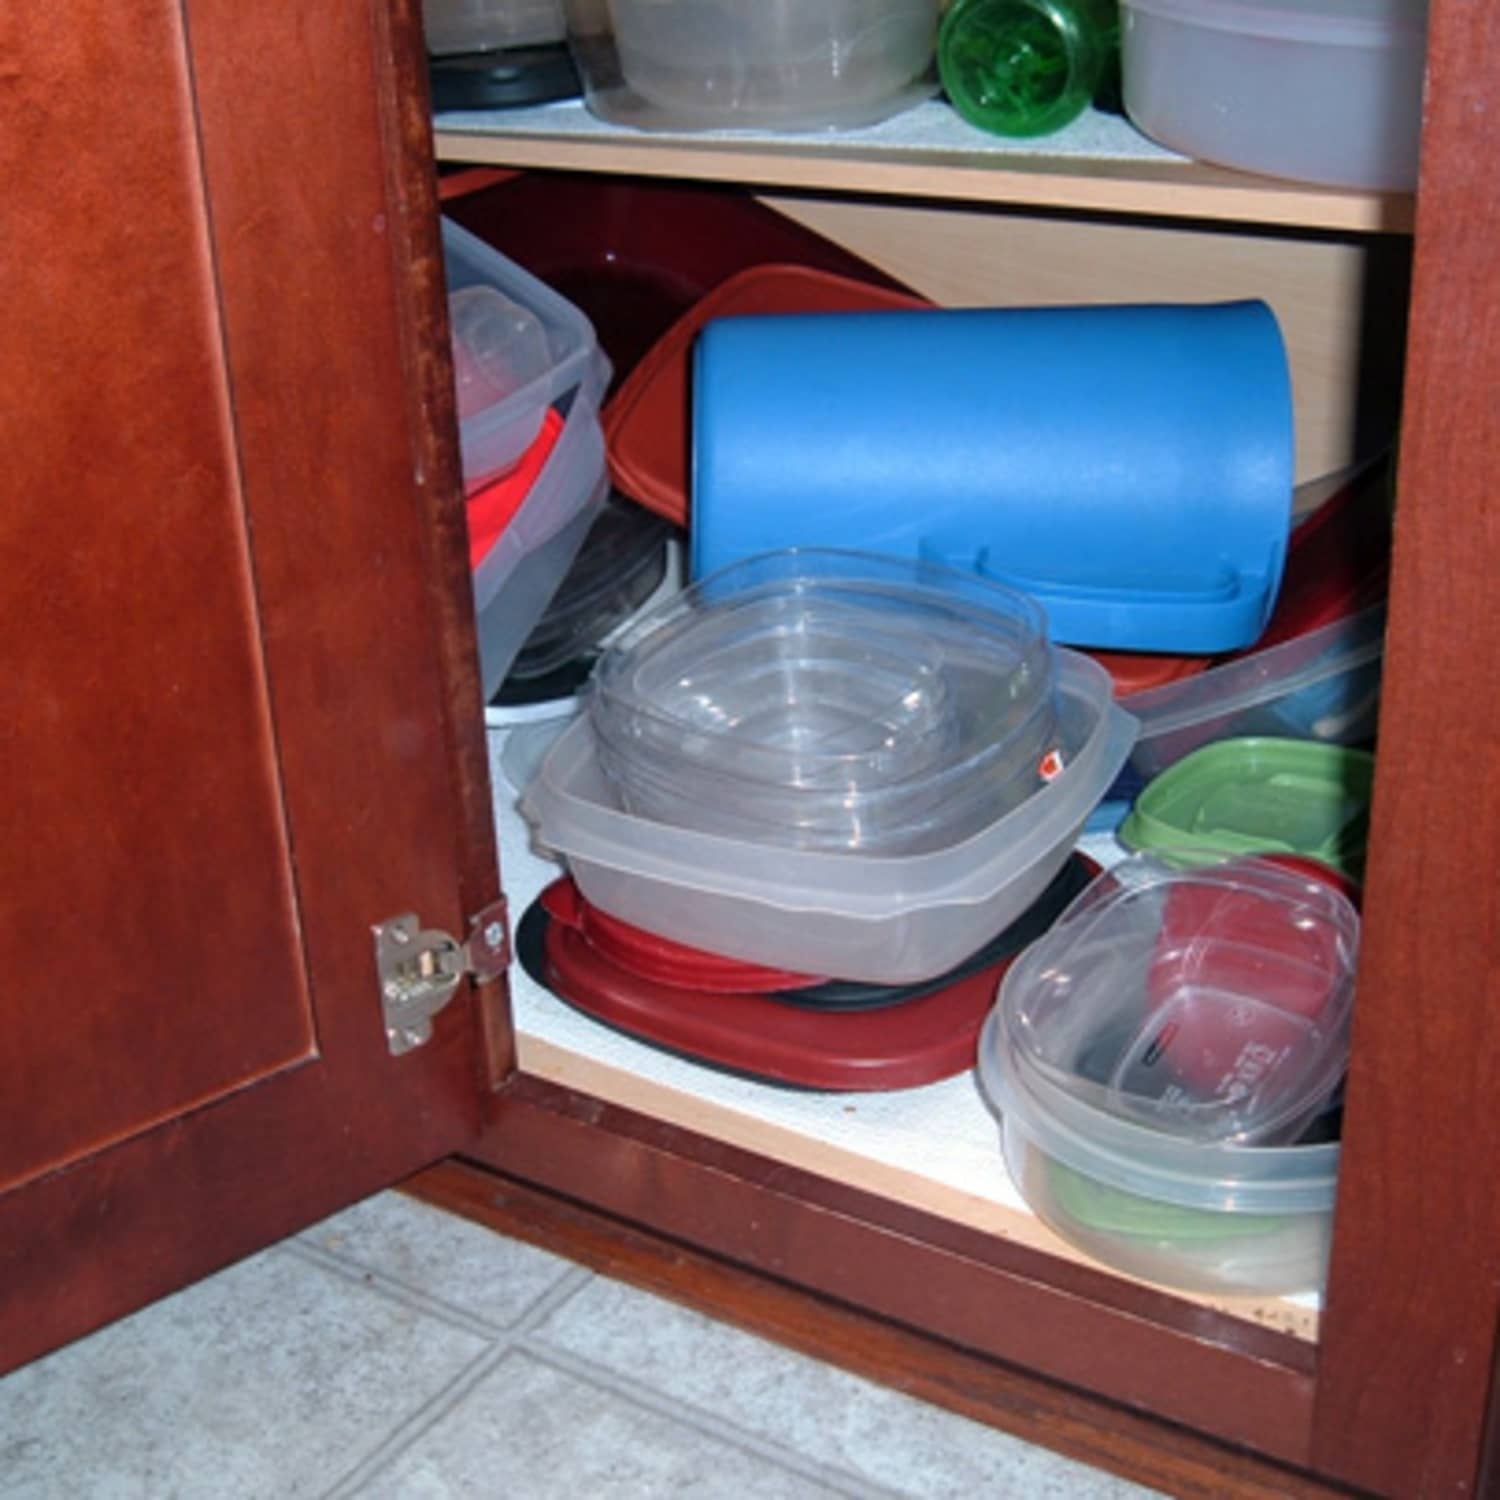 Food Storage Containers: 7 Tips for Controlling Clutter | Kitchn